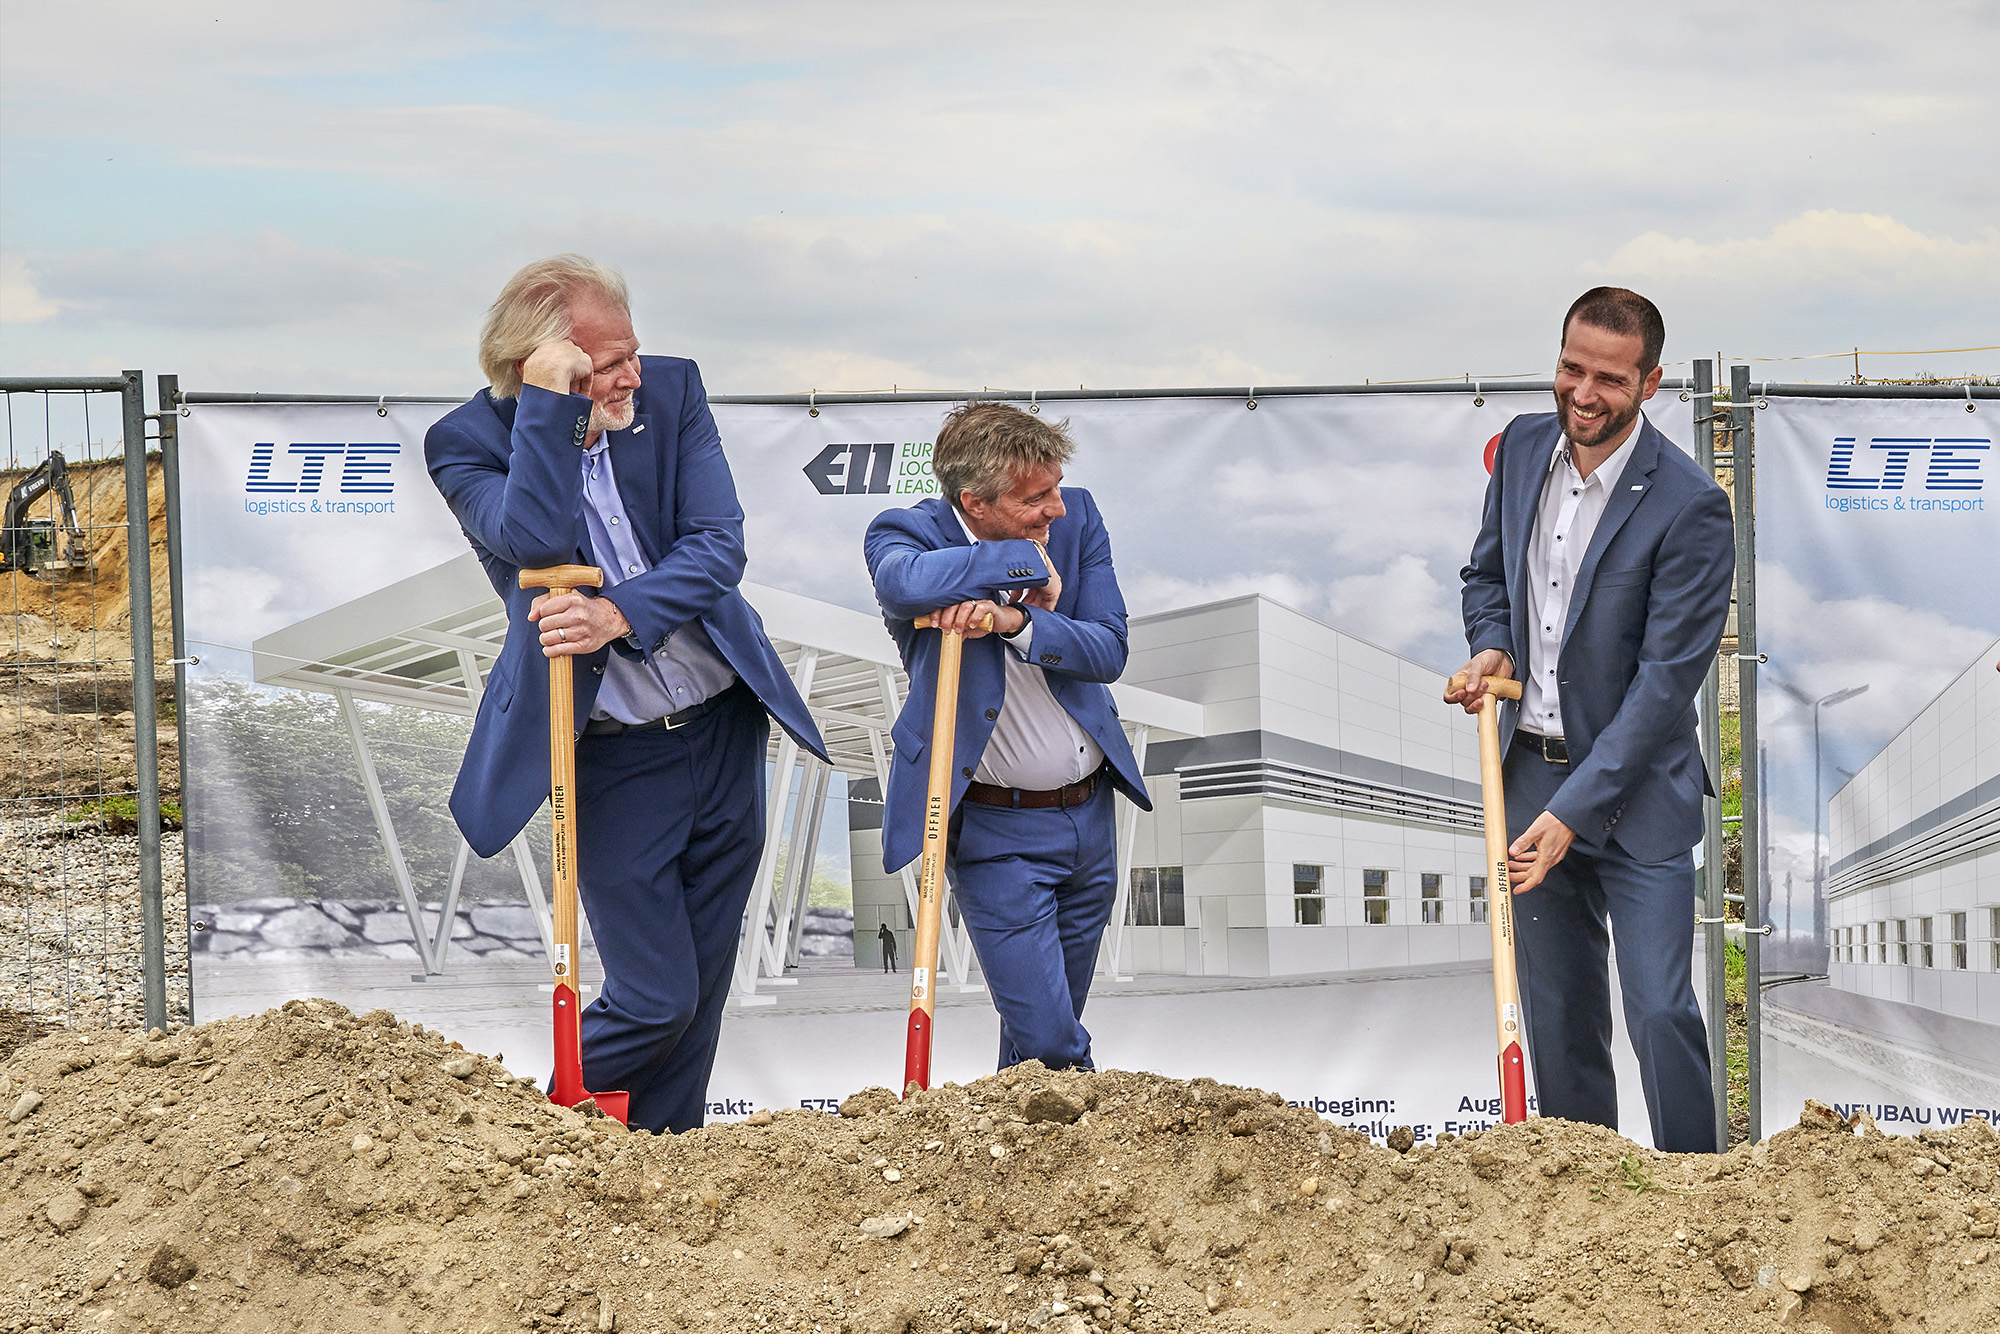 Groundbreaking - from left: Mandl, Benda, Kollnig